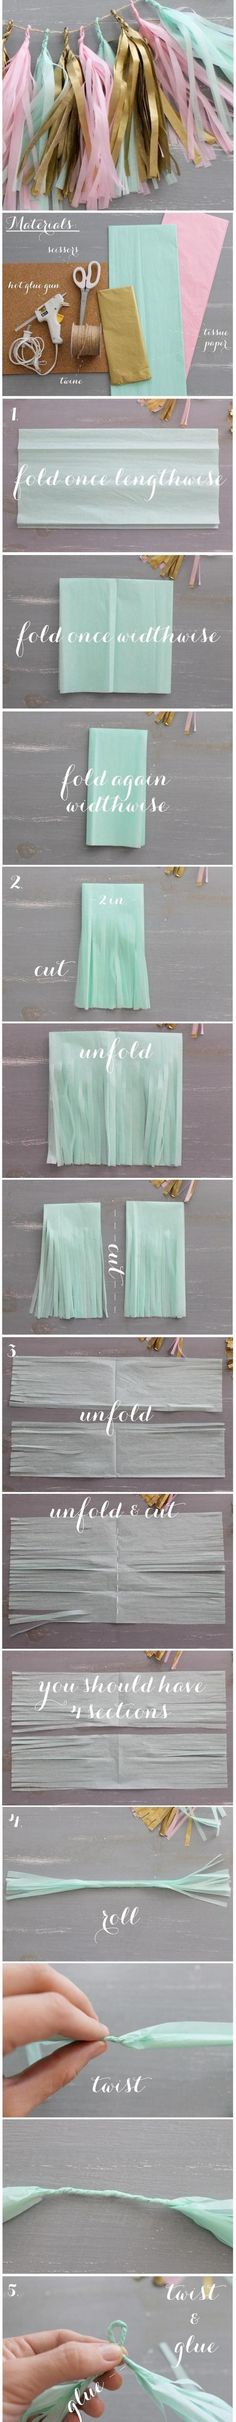 How to make tassel garland- perfect for a celebration & easy to make!: